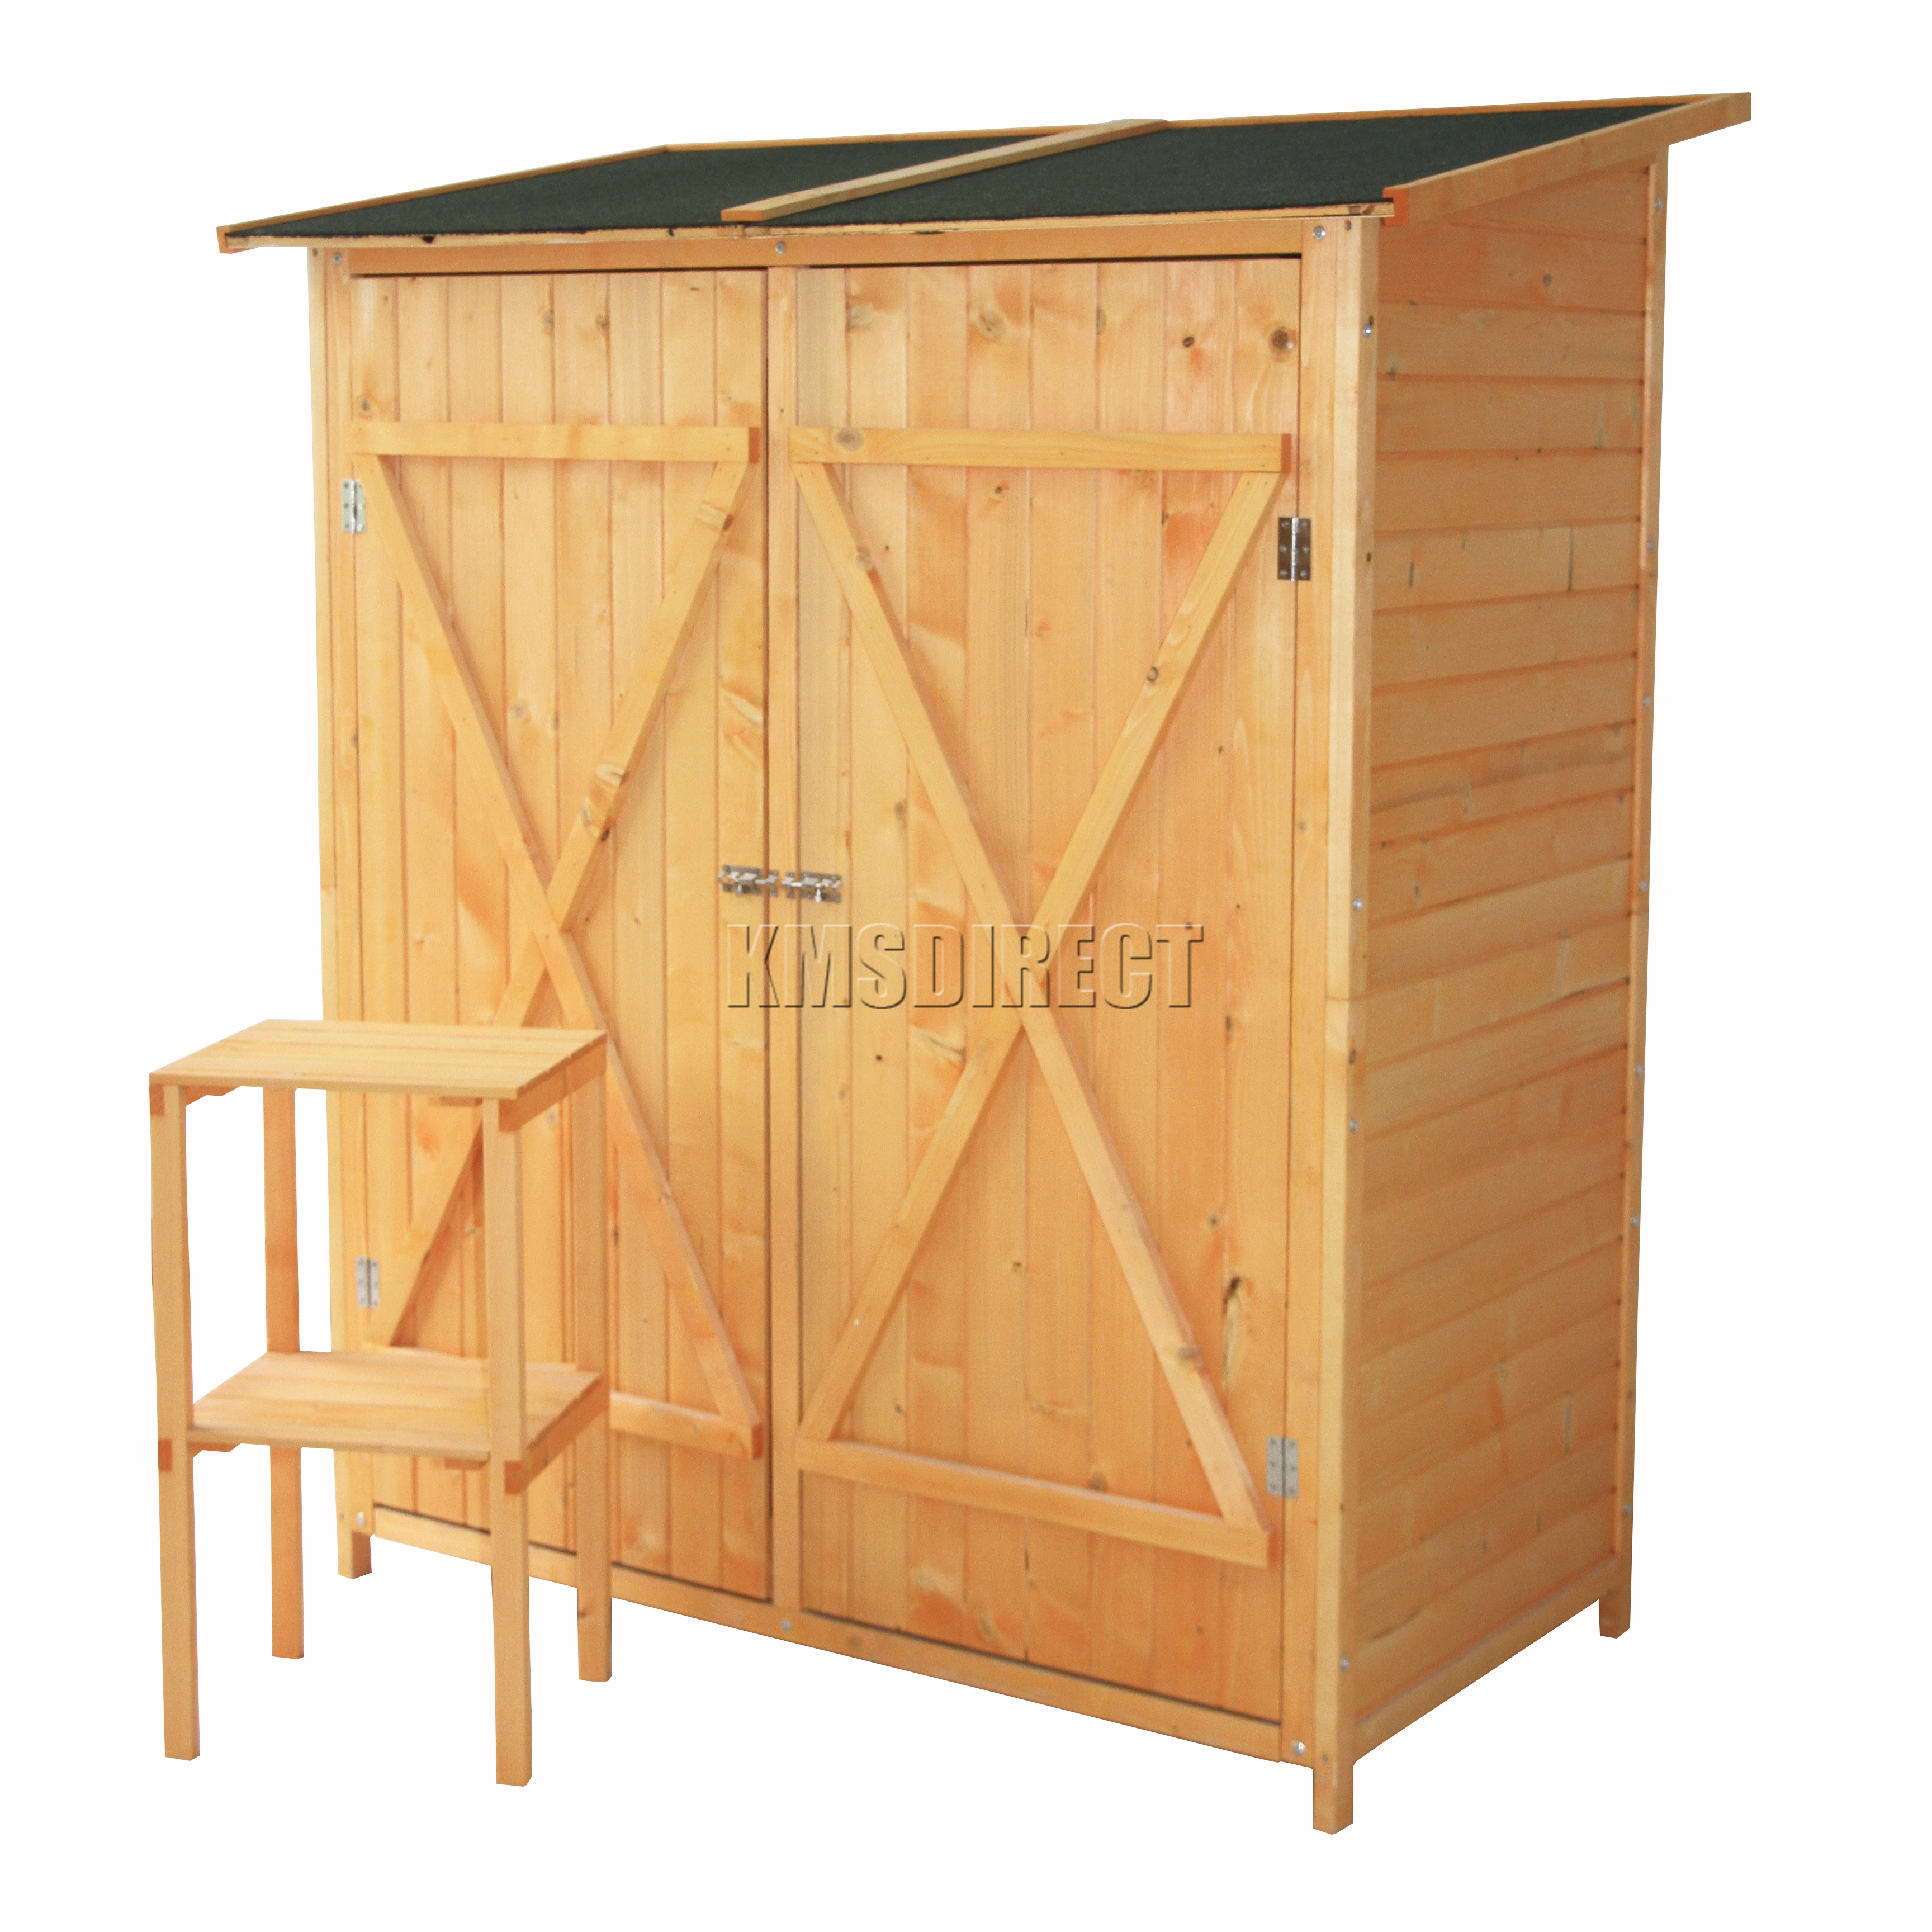 details about foxhunter garden tool shed wood tool storage chest pent